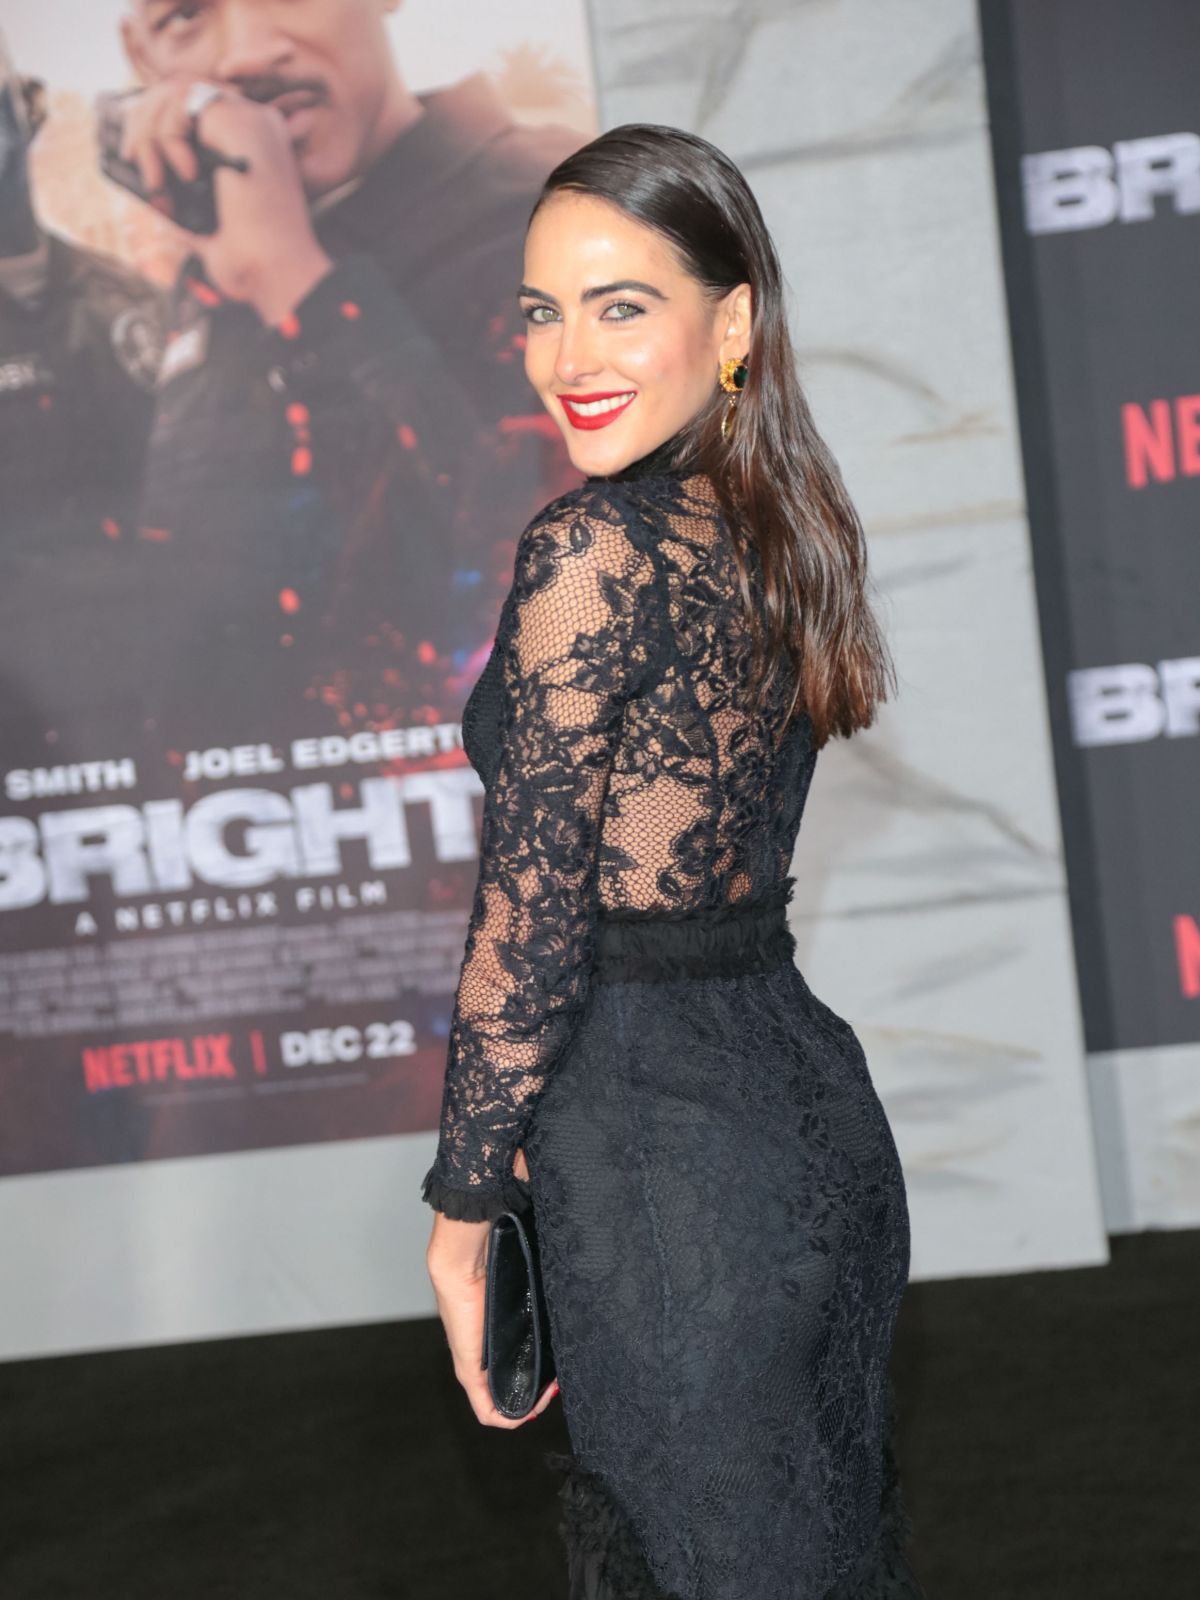 HD Wallpapers & Sexy Photos of Daniela Botero at Bright Premiere in Los Angeles